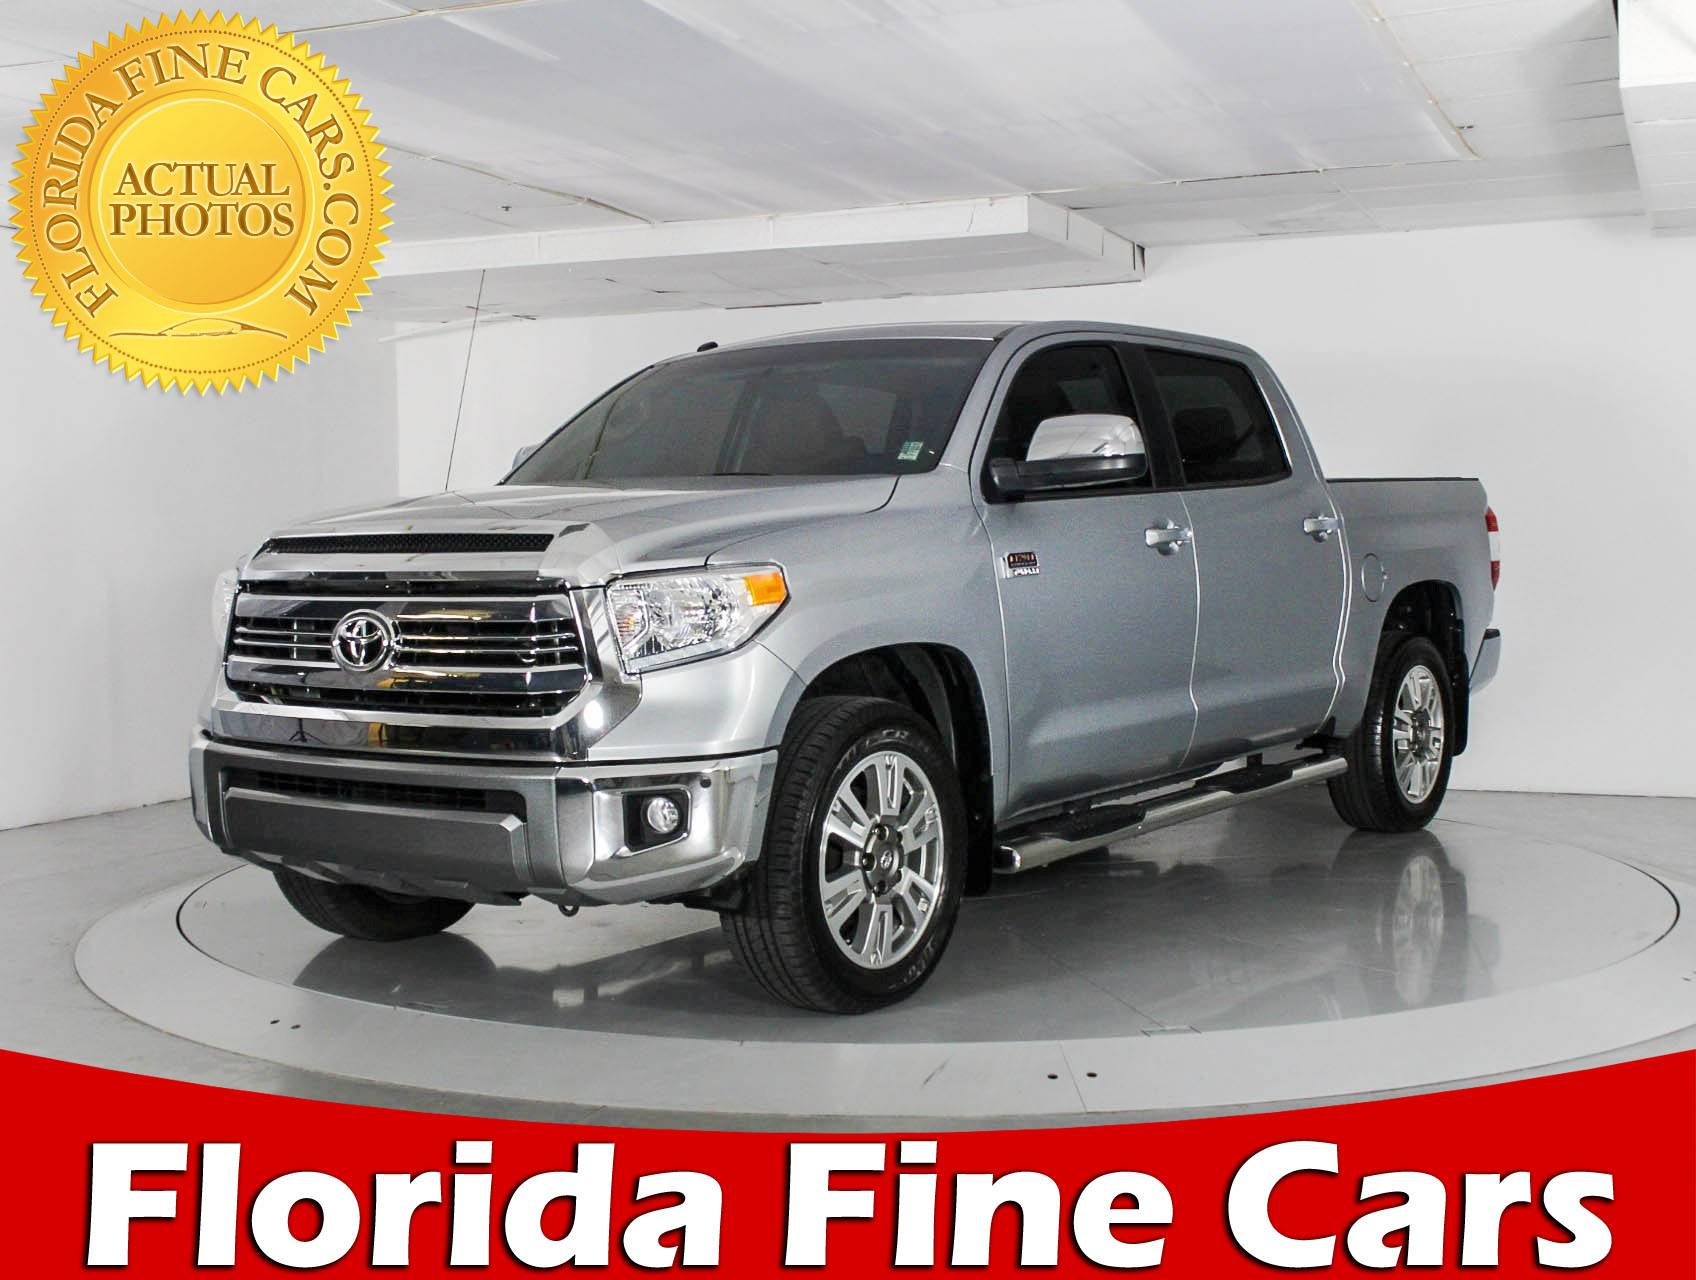 Used 2016 TOYOTA TUNDRA 1794 Truck for sale in WEST PALM FL